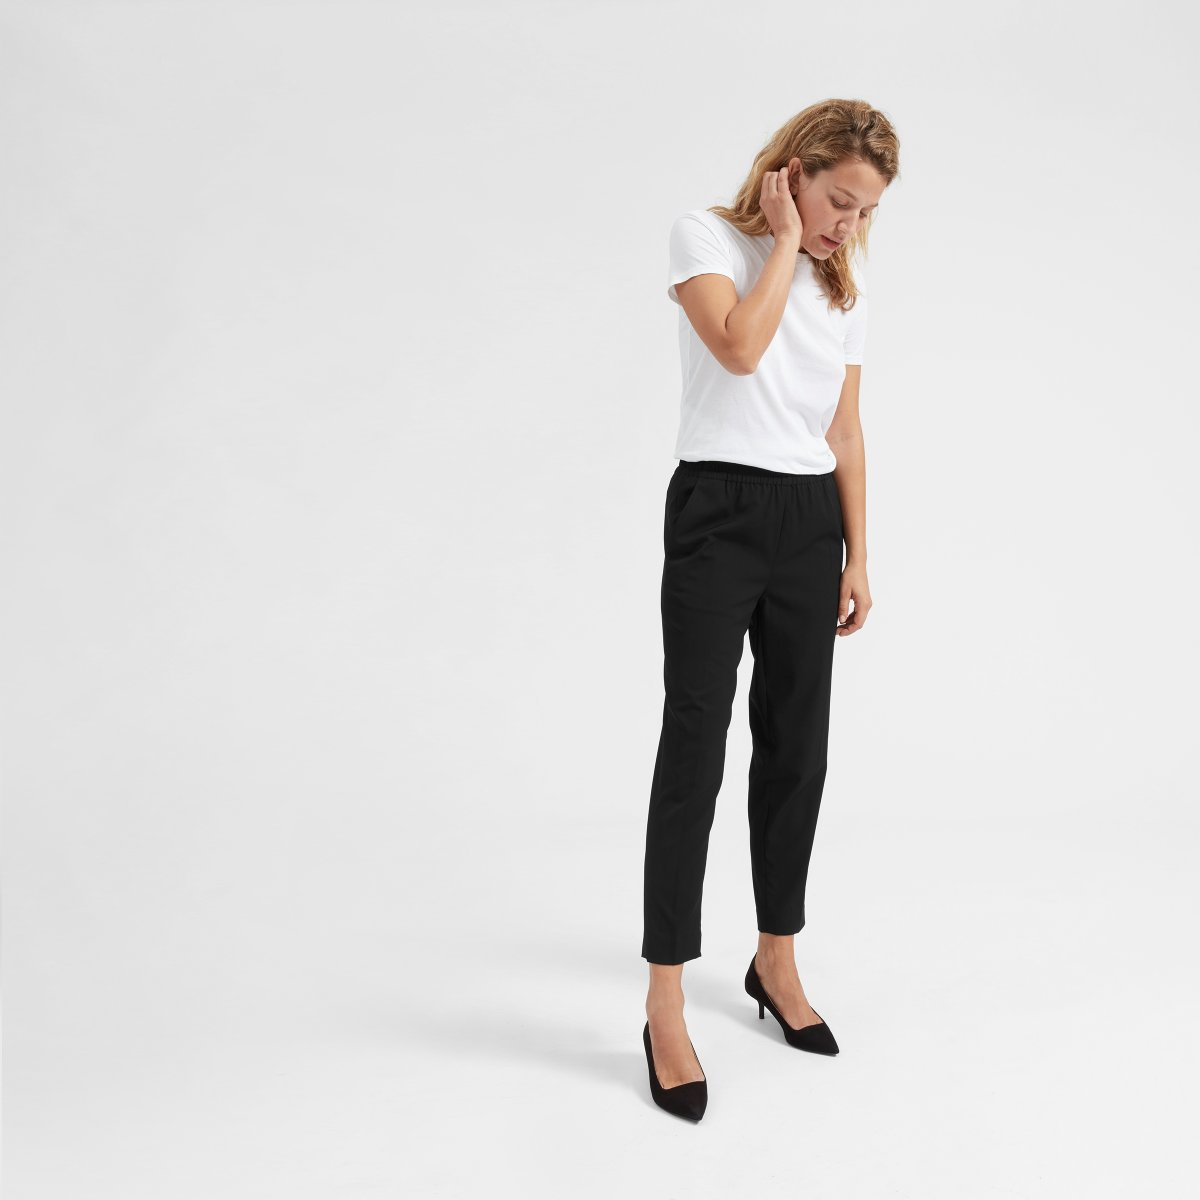 dress pants - This one always gets me since I no longer work in a professional setting. The key is to find a pair of dress pants that can be dressed up or down. They need to be comfortable!